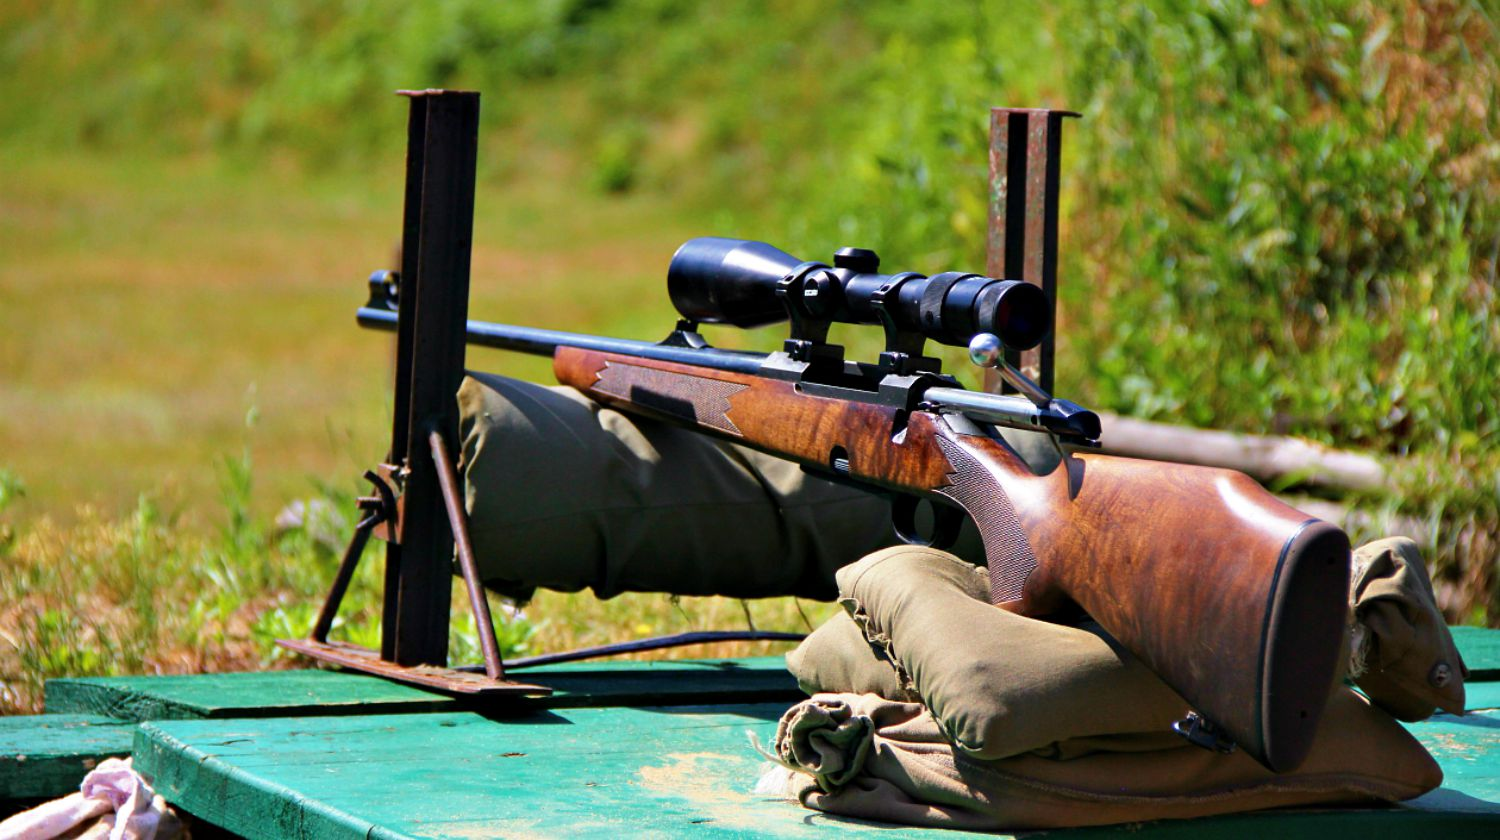 Hunting rifle while adjustment at a shooting range | Chronograph And Ballistics | Long Range Hunting Tips | Featured